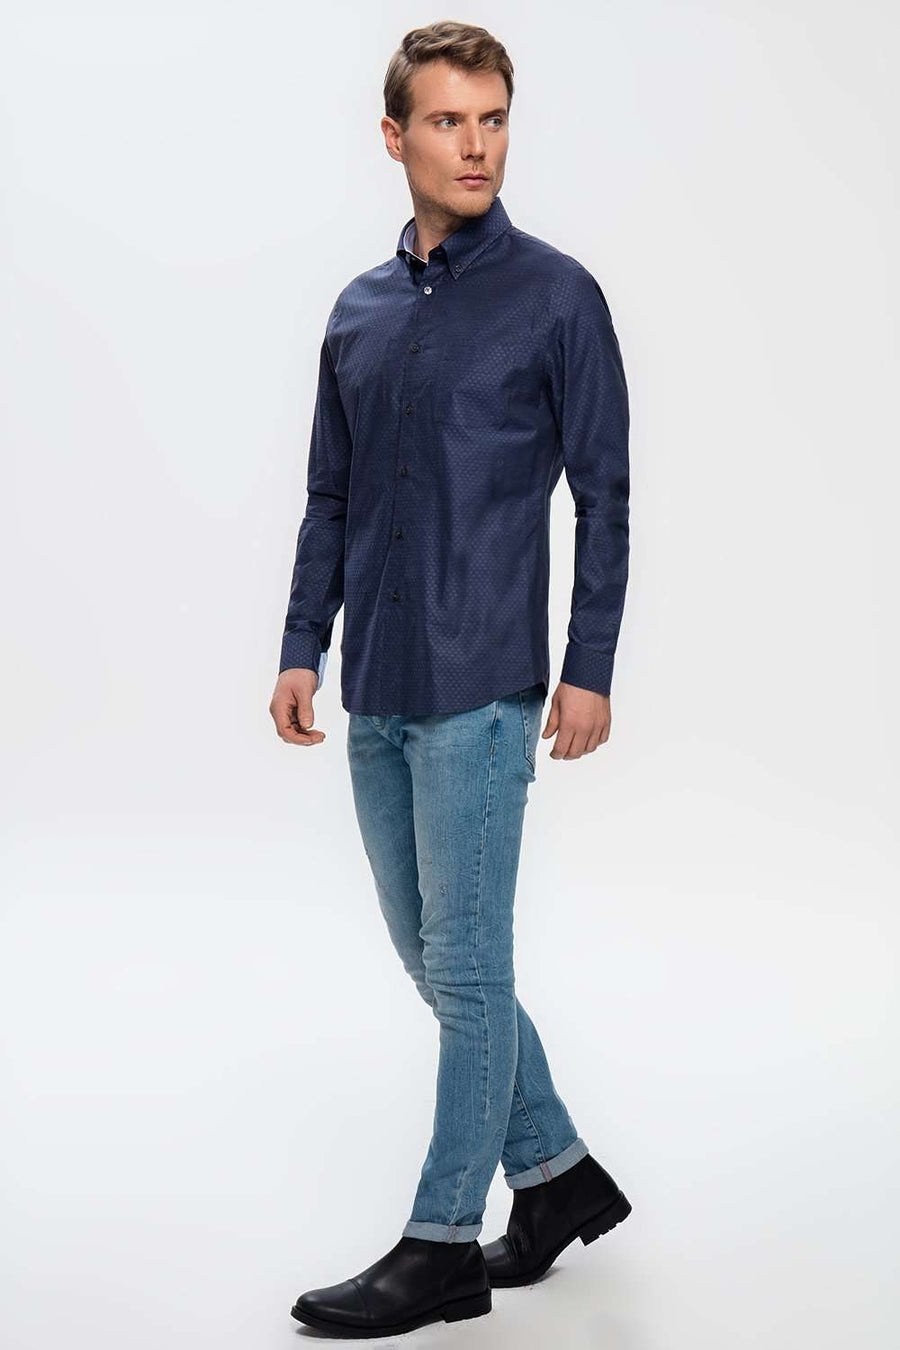 BRUSSELS DARK BLUE SHIRTe],Duacosta